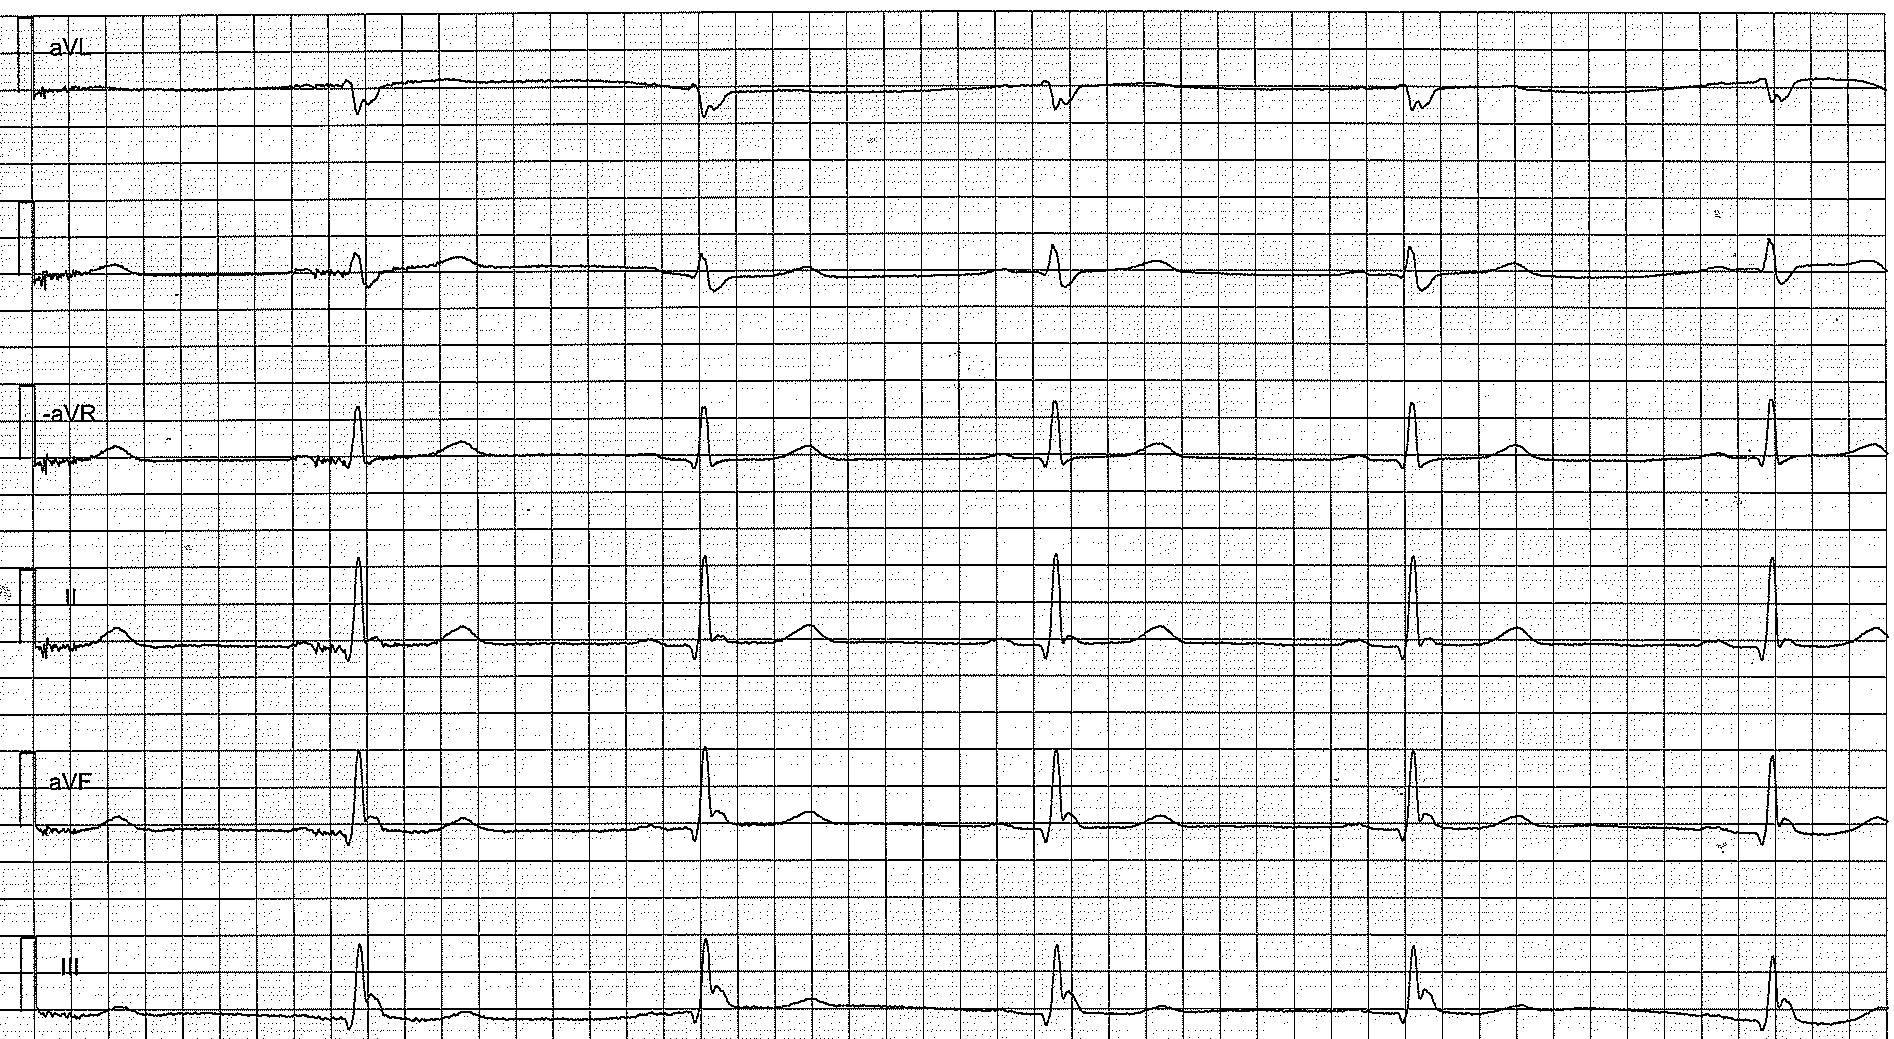 Figure 2. Limb leads showing early repolarization pattern. This patients brother died from sudden cardiac arrest at the age of 29.